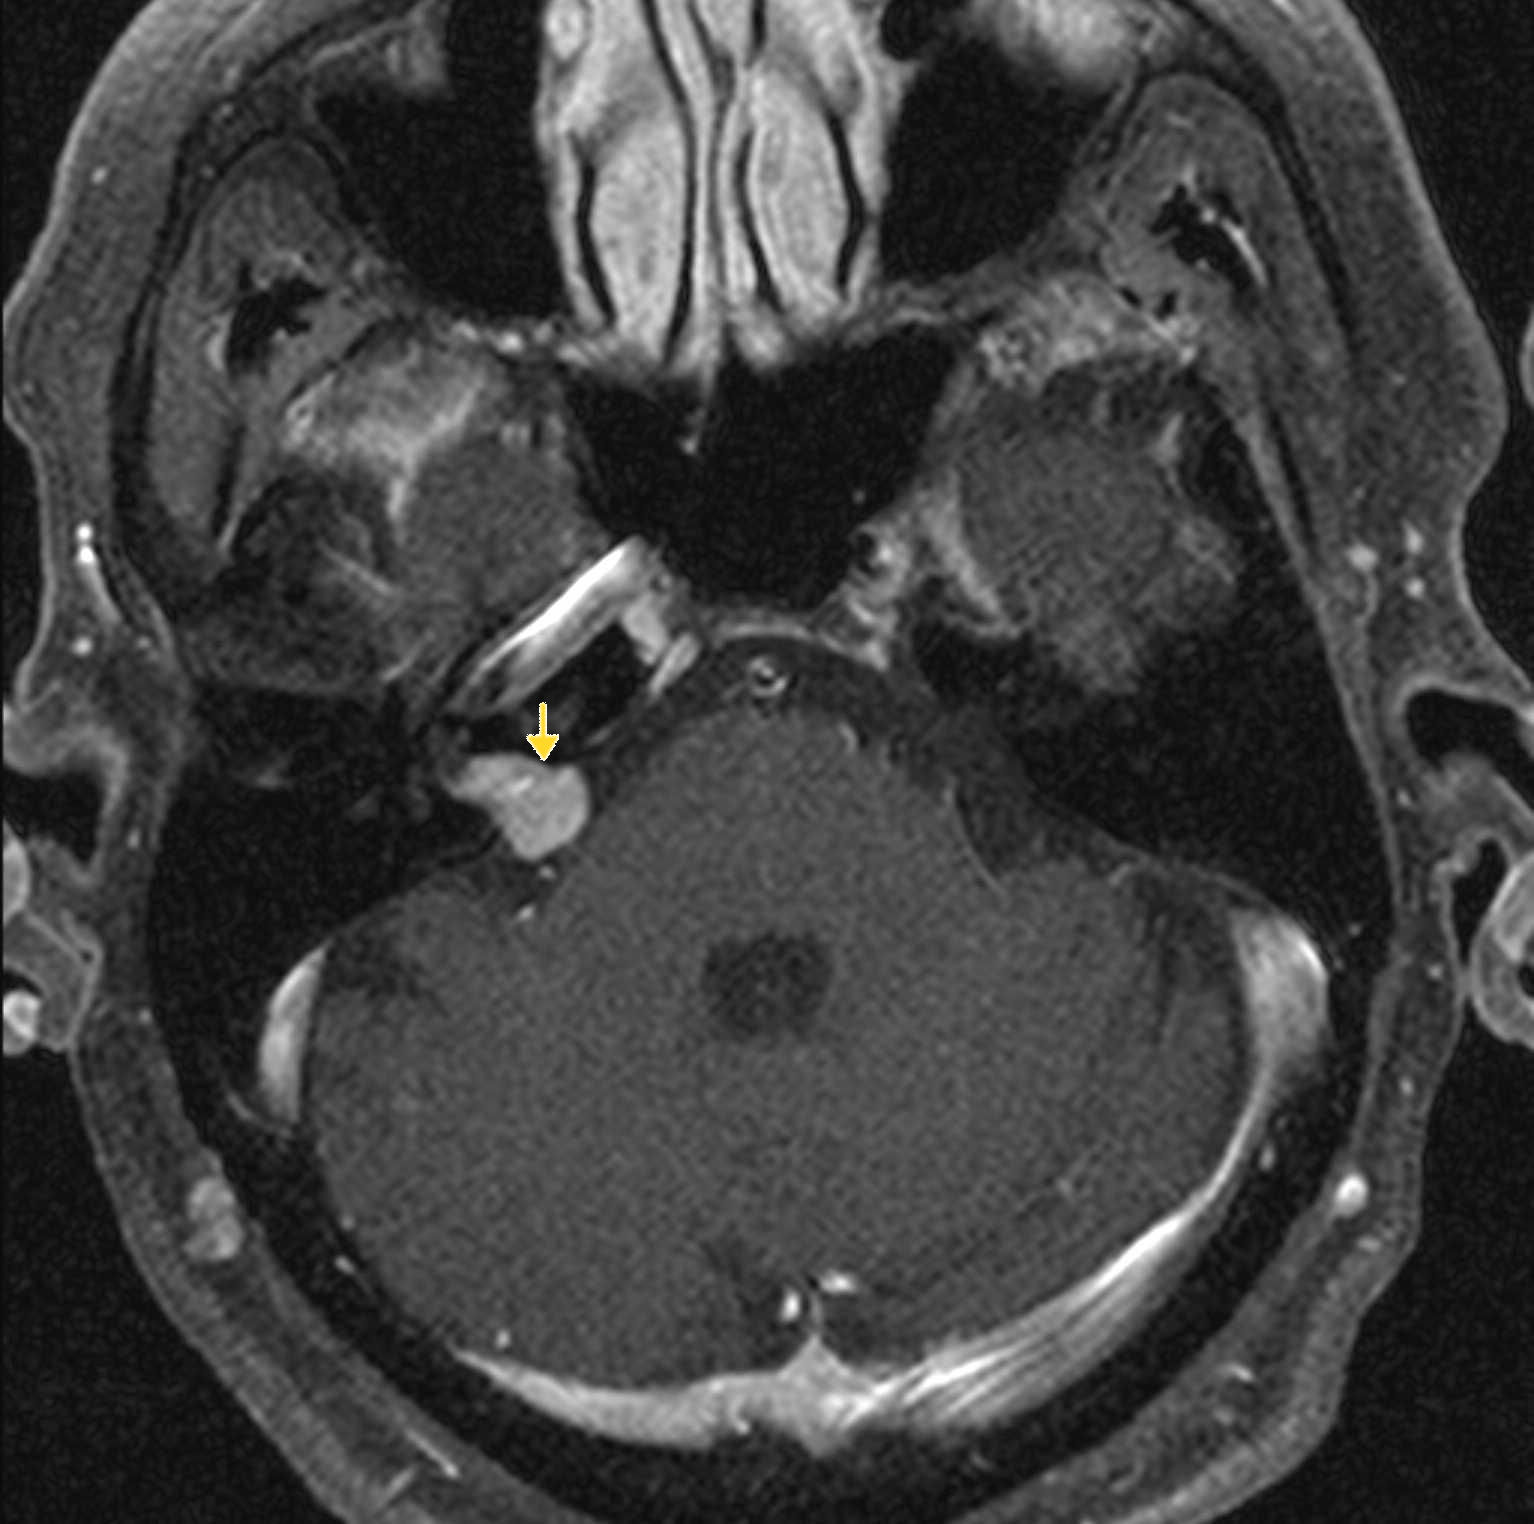 acoustic neuroma Acoustic neuroma - what are the tests for acoustic neuroma mri audiograms with differ ence in hearing between ears may require further evaluation, but mri scan with contrast material remins gold standard for diagnosis of acoustic neuroma some centers may have stacked abr testing but not.